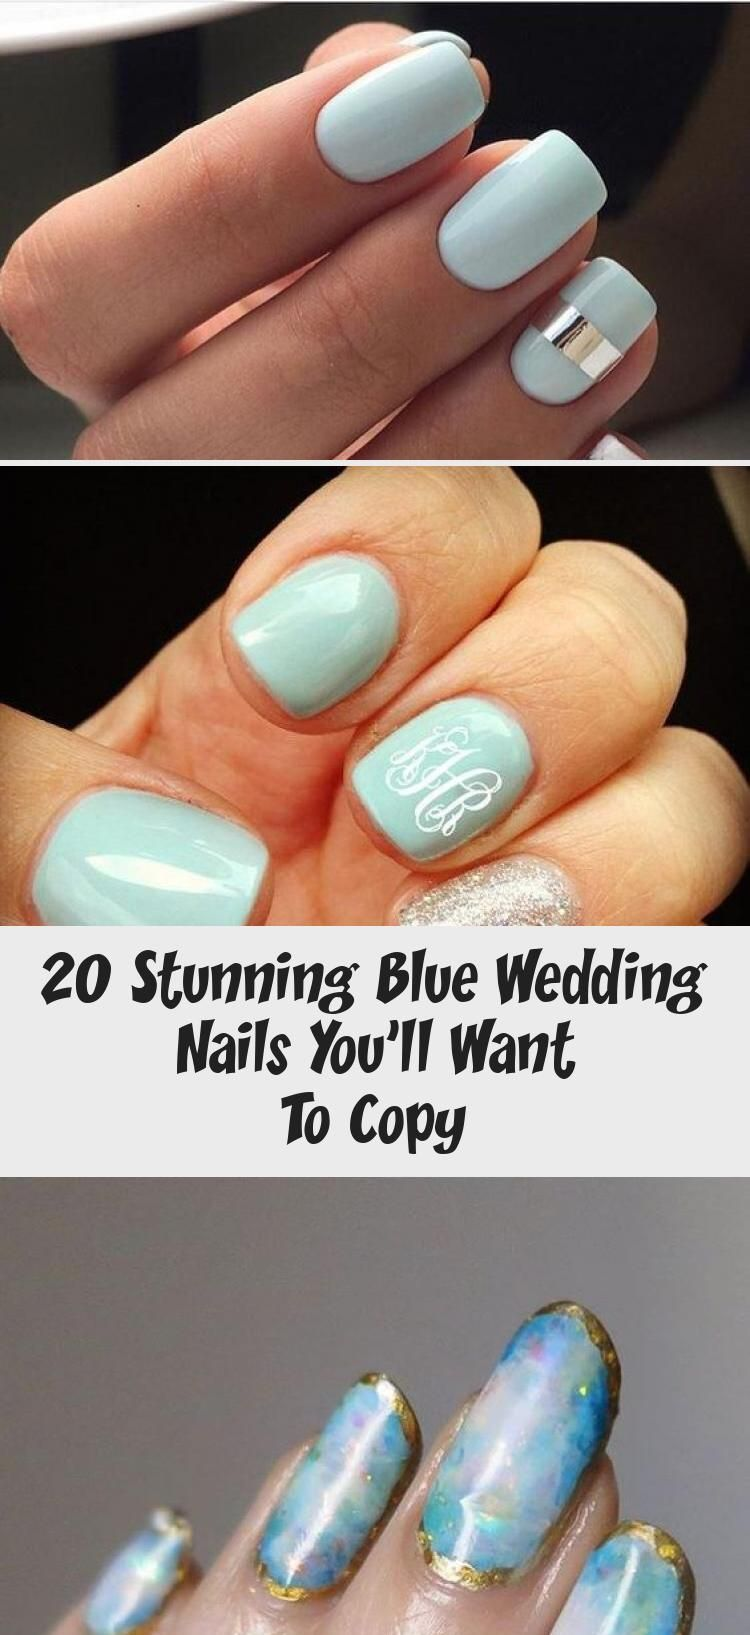 Photo of 20 Stunning Blue Wedding Nails You'll Want To Copy – Nail